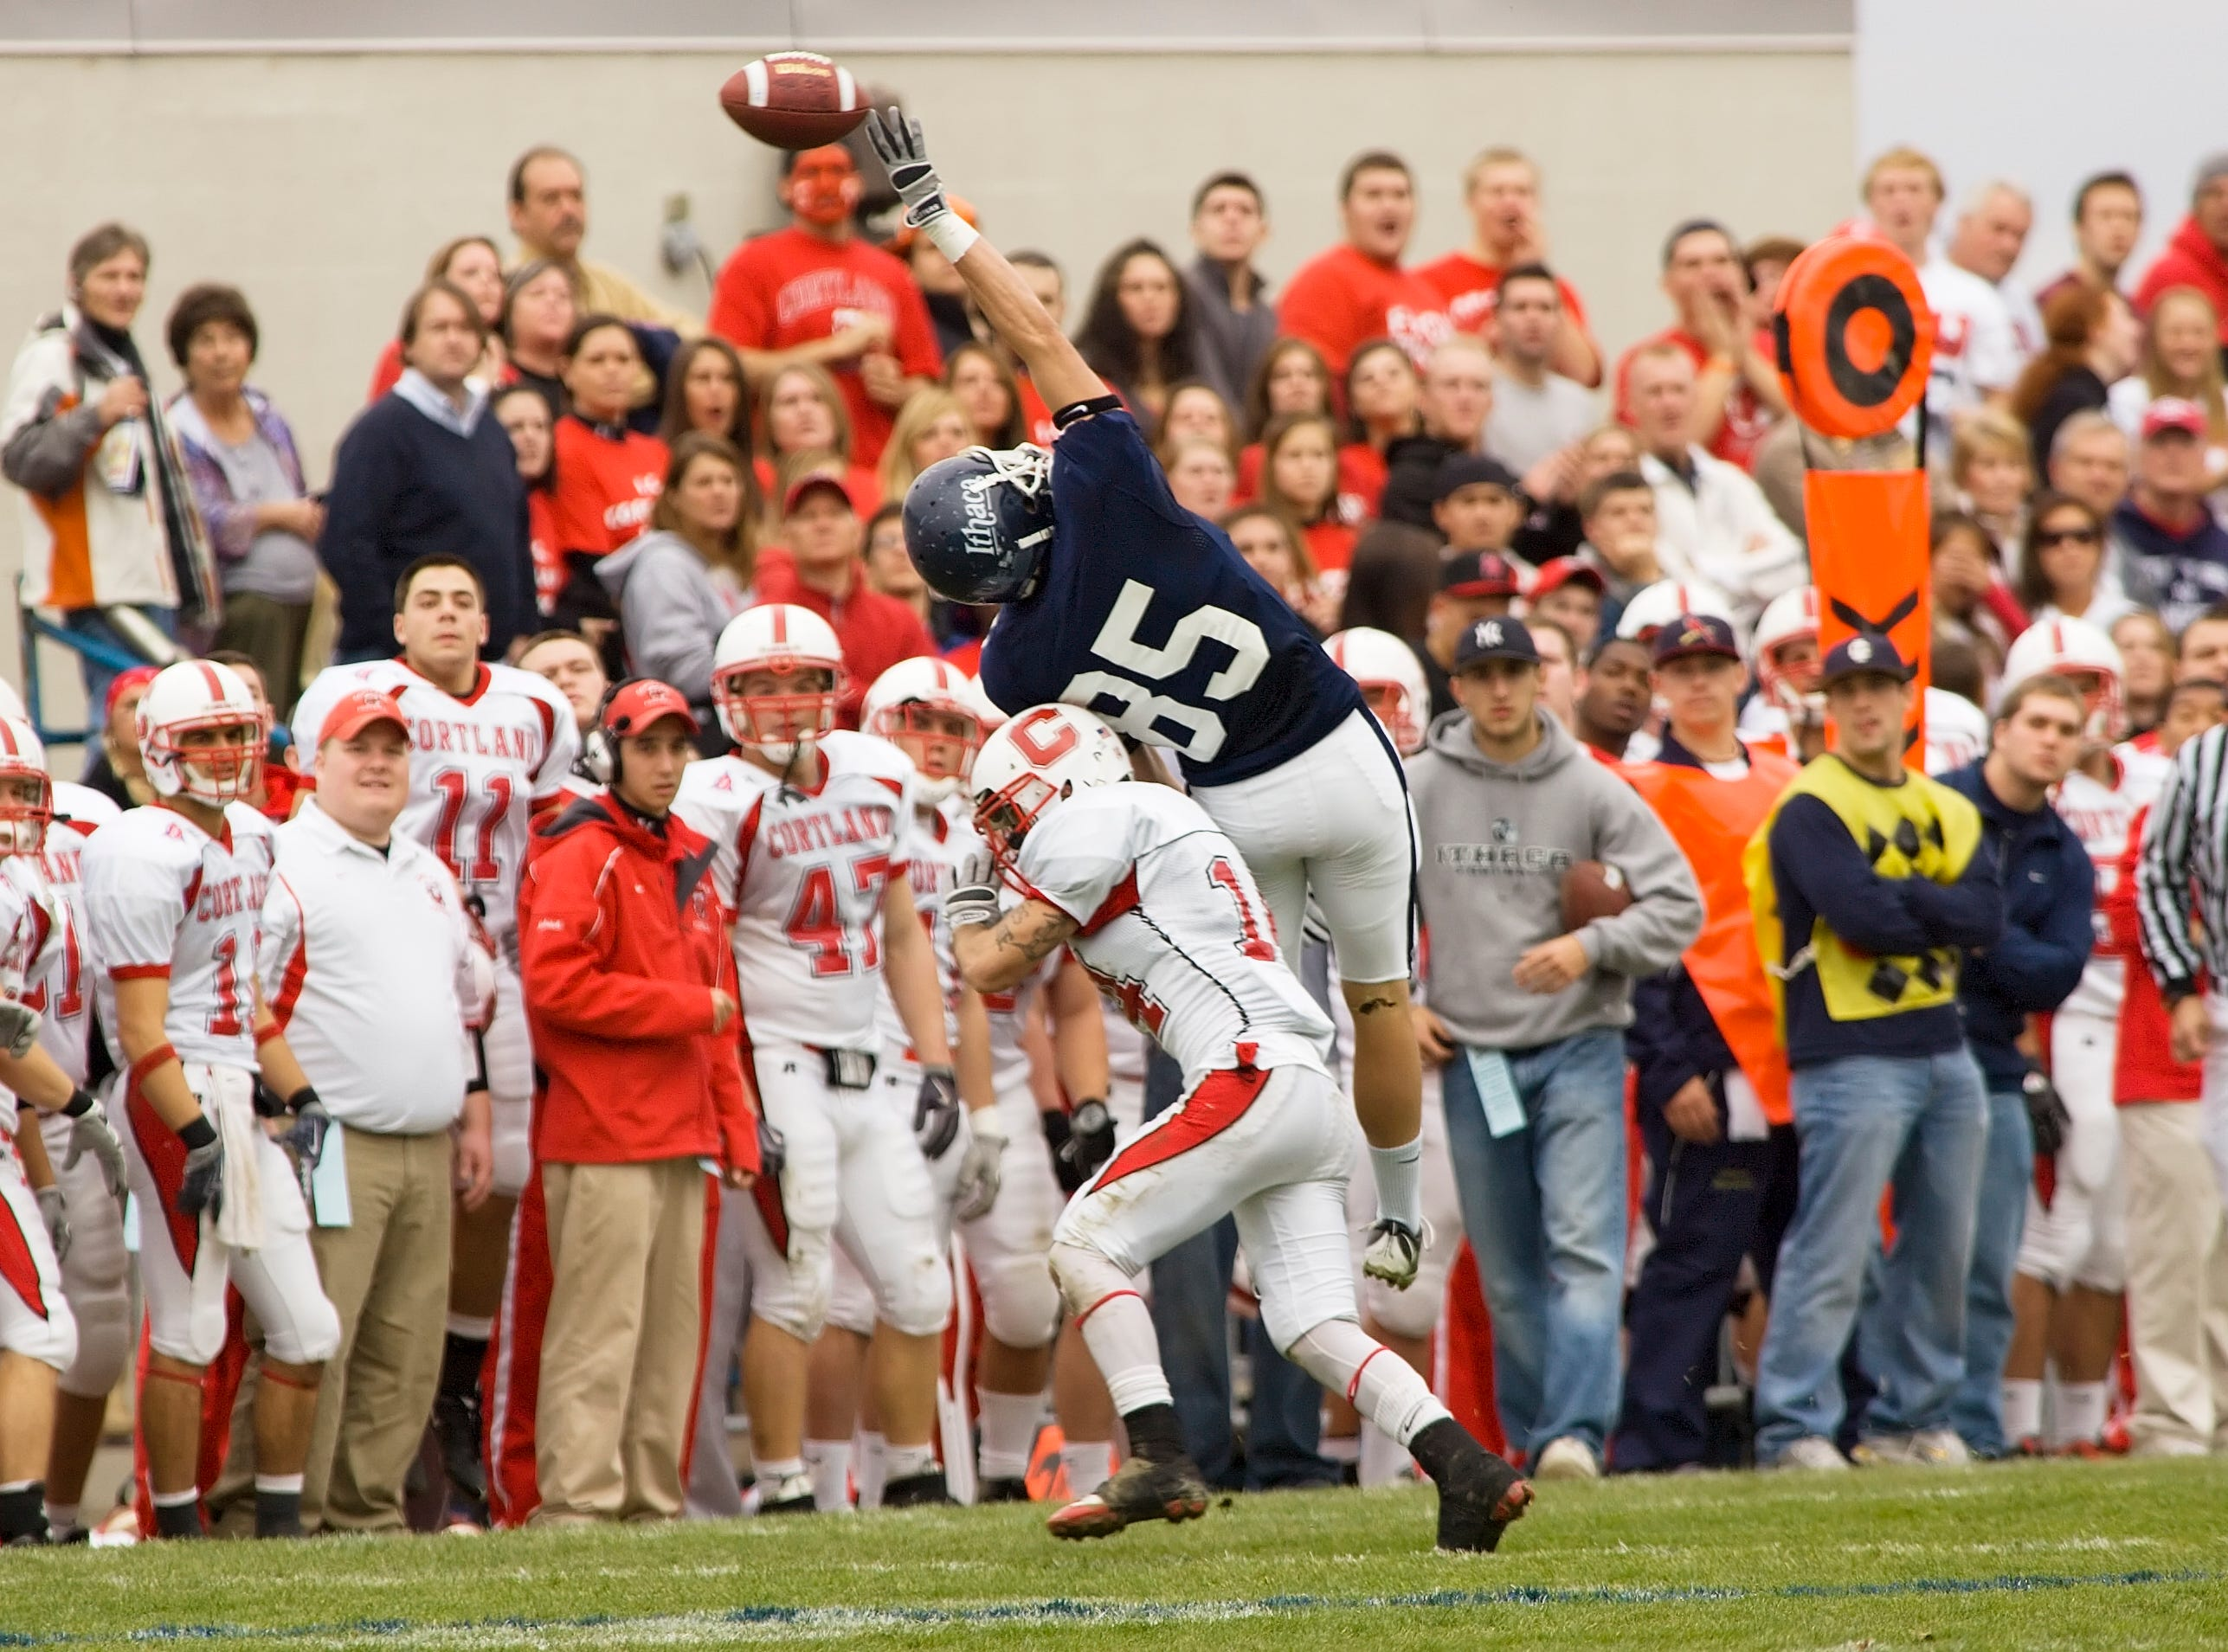 2009: IC receiver Joseph Ingrao, and Cortland cornerback Joe Lopez, in last year's game. Lopez has 7 interceptions this year for Cortland.